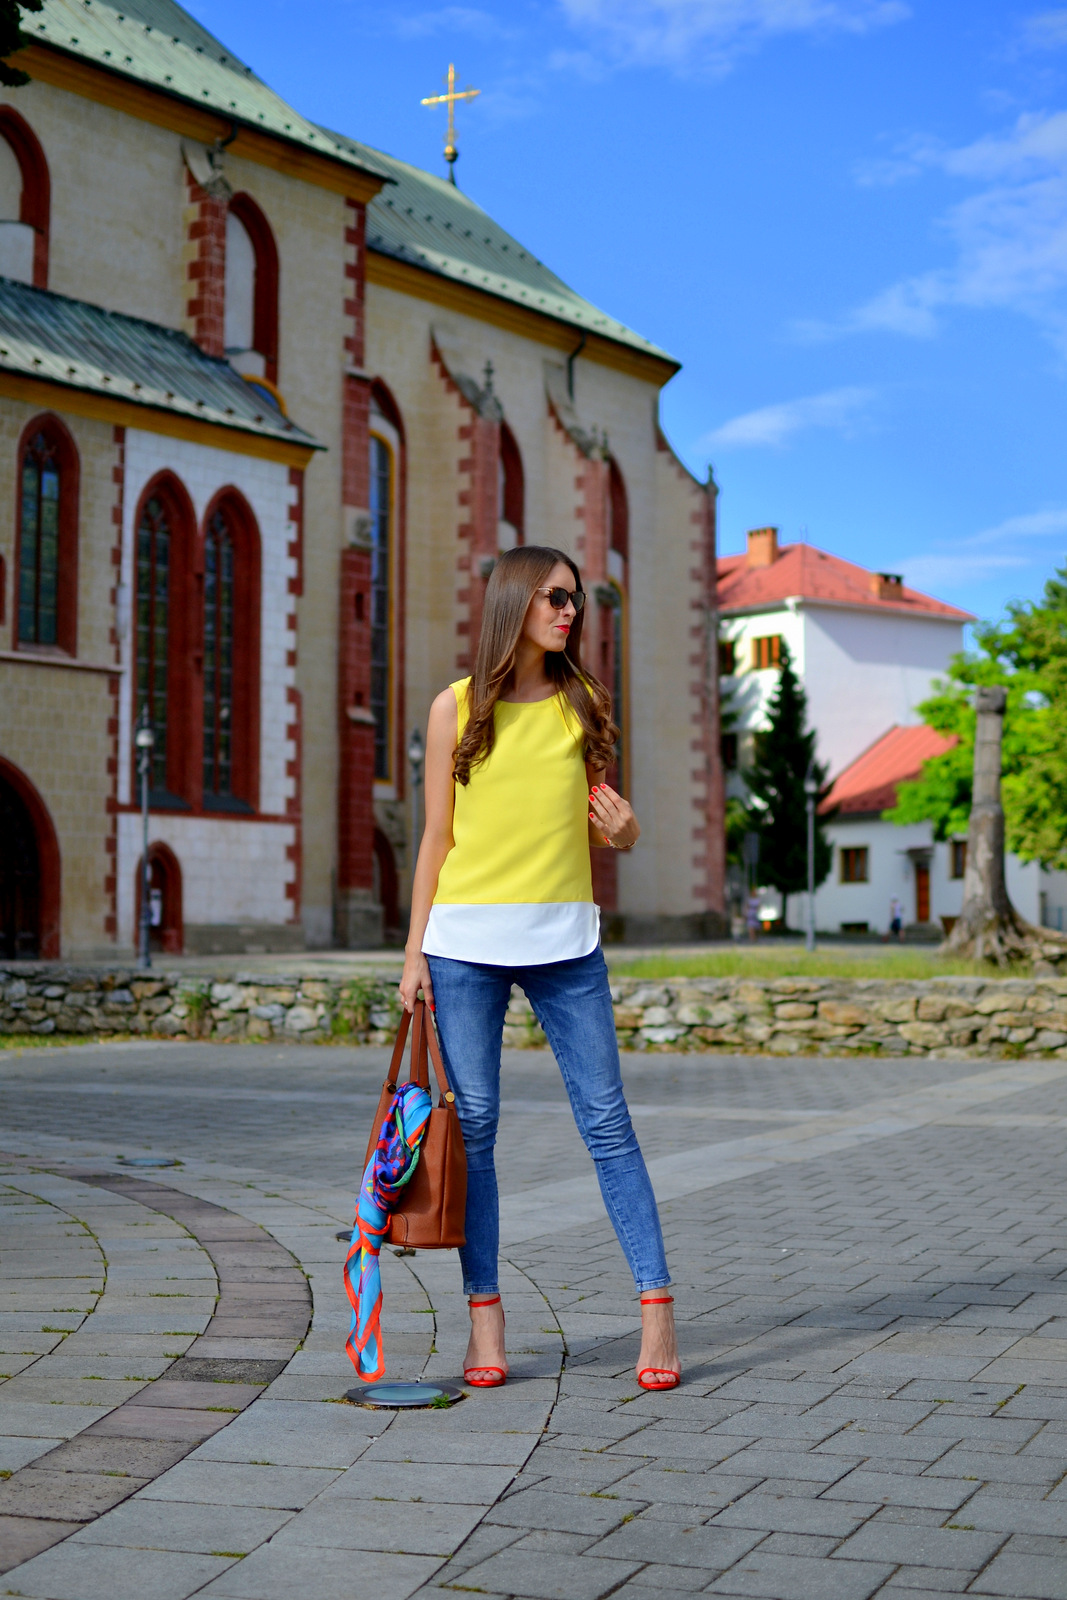 http://www.mademoiselleiva.com/2016/07/yellow-white-refashion-blouse.html